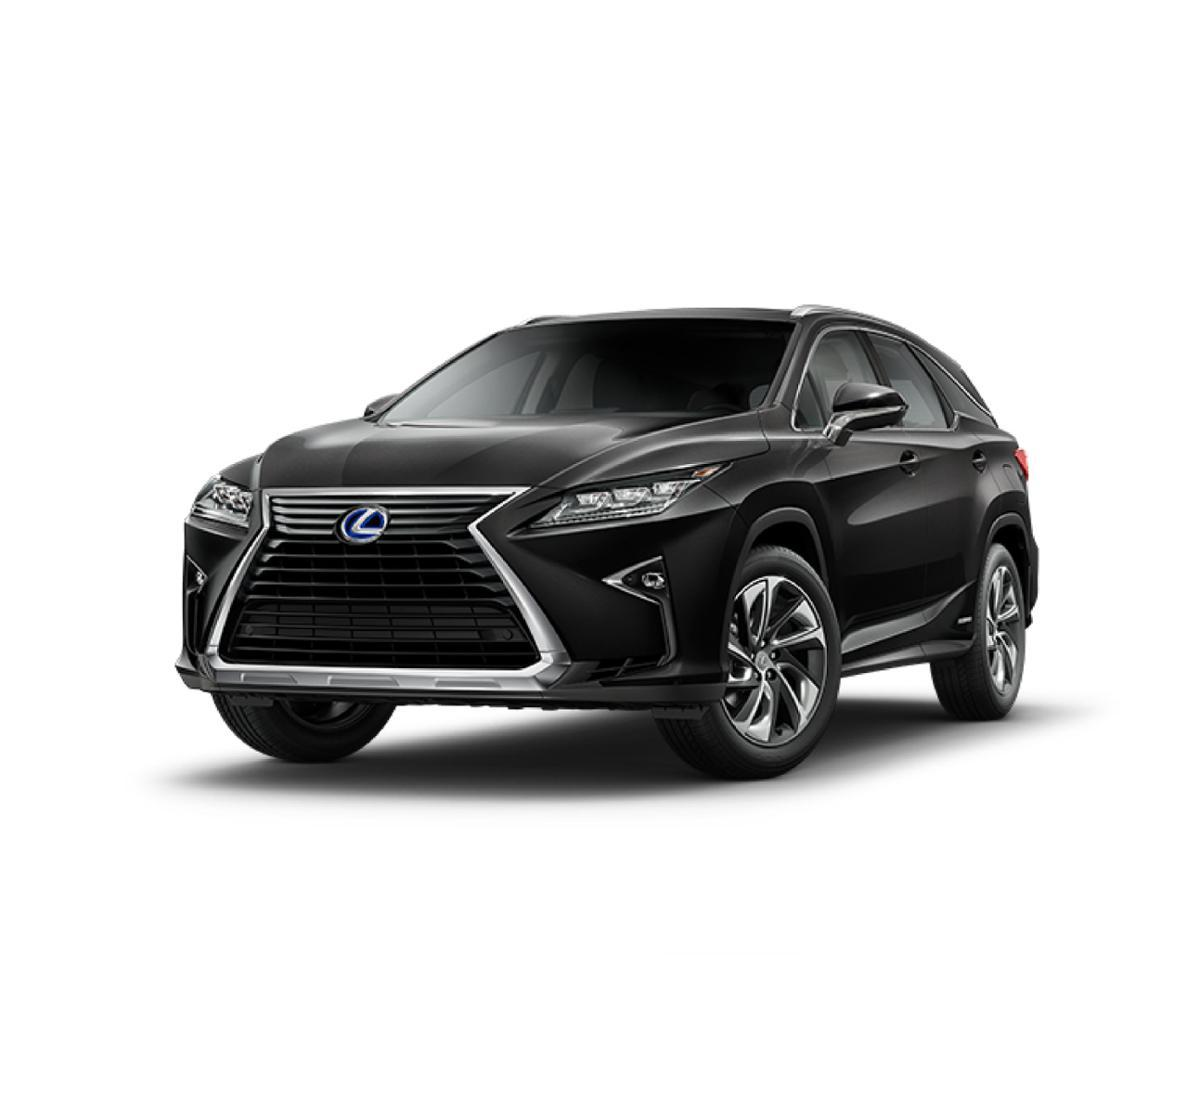 2018 Lexus RX 450hL Vehicle Photo in Torrance, CA 90505